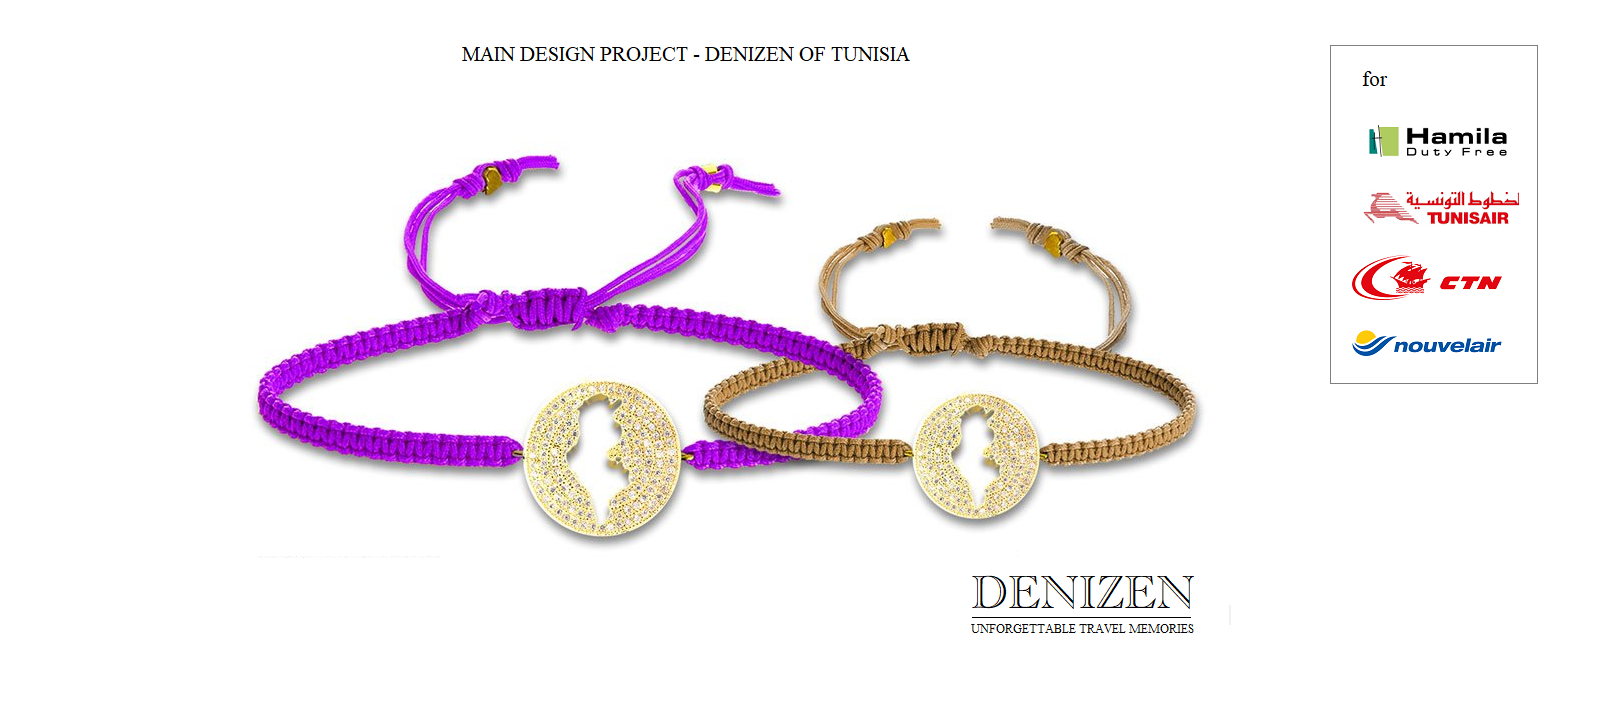 Denizen bracelet of Tunisia for Tunisair - Hmila - CTN and Tunisair